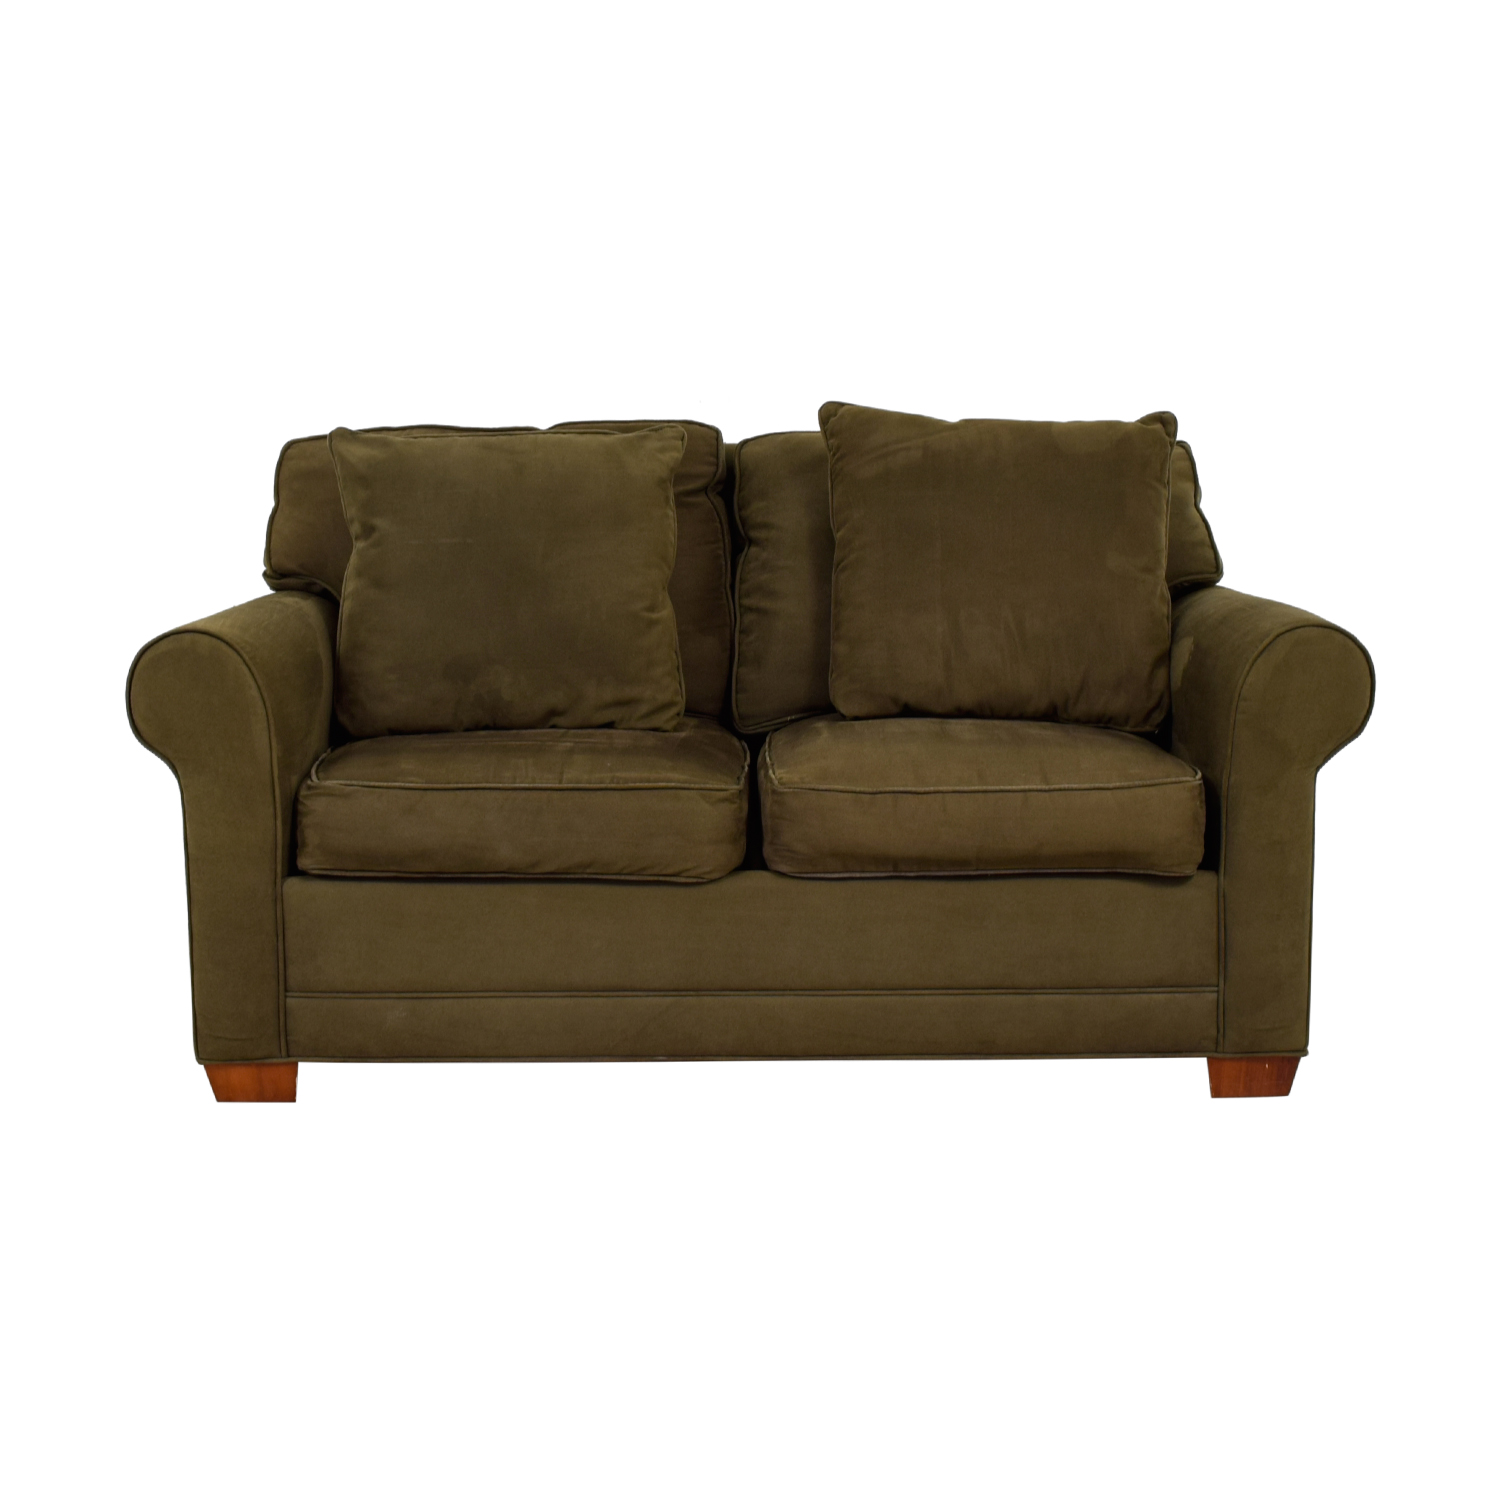 buy Raymour & Flanigan Brown Suede Two-Cushion Loveseat Raymour & Flanigan Sofas